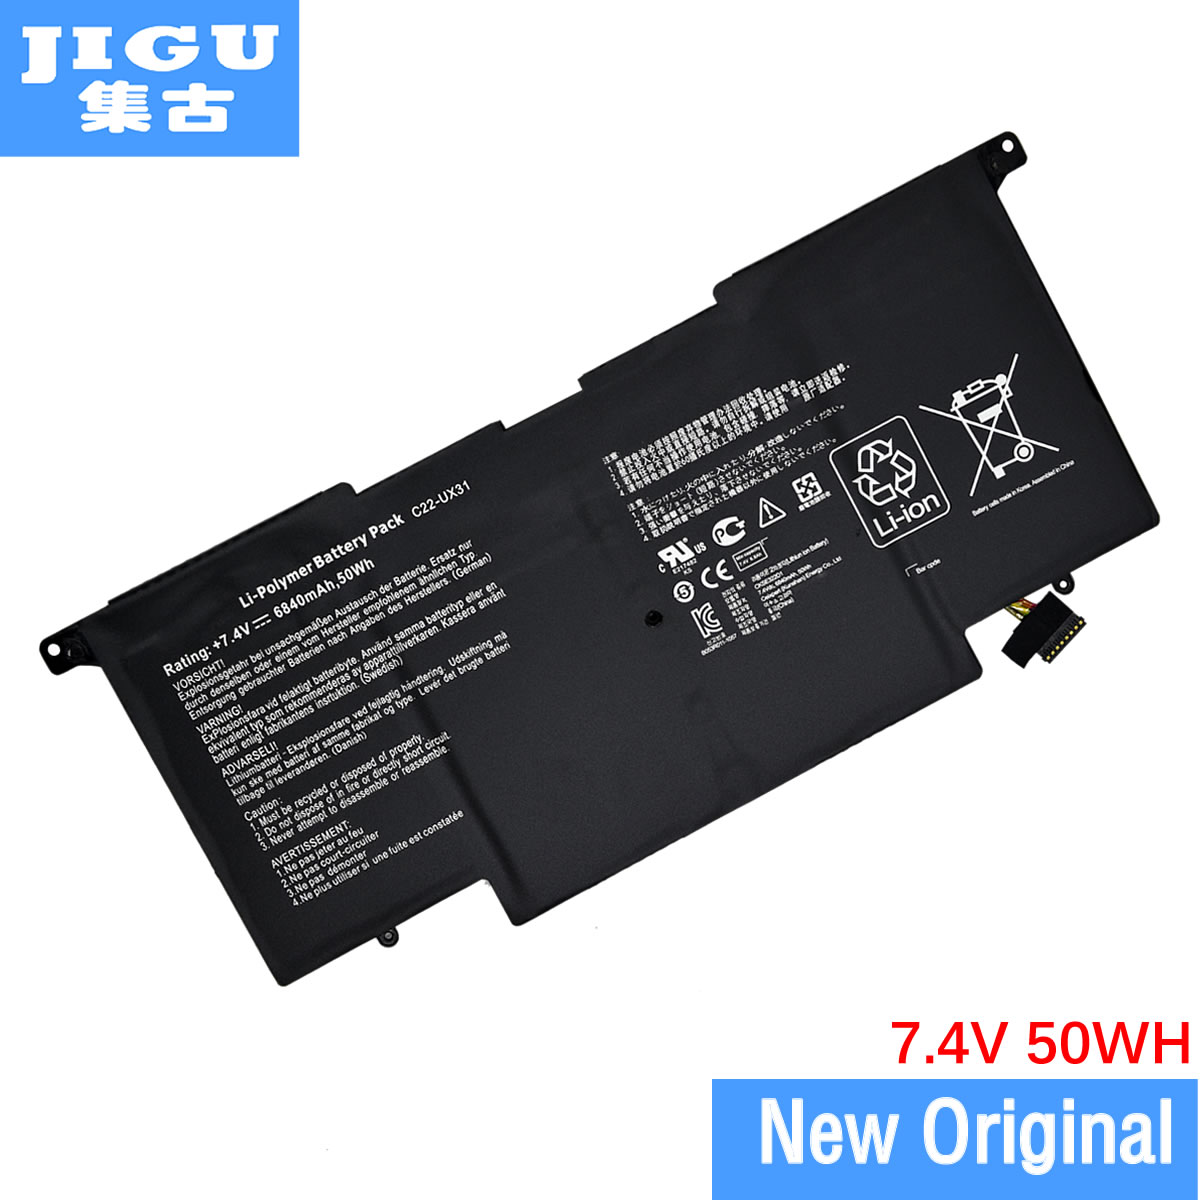 JIGU C22-UX31 C23-UX31 Original laptop Battery For Asus Ultrabook for ZENBOOK UX31 UX31A UX31E 7.4V 6840MAH 50WH free shipping new 50wh genuine c32n1305 battery for asus zenbook infinity ux301la ultrabook laptop